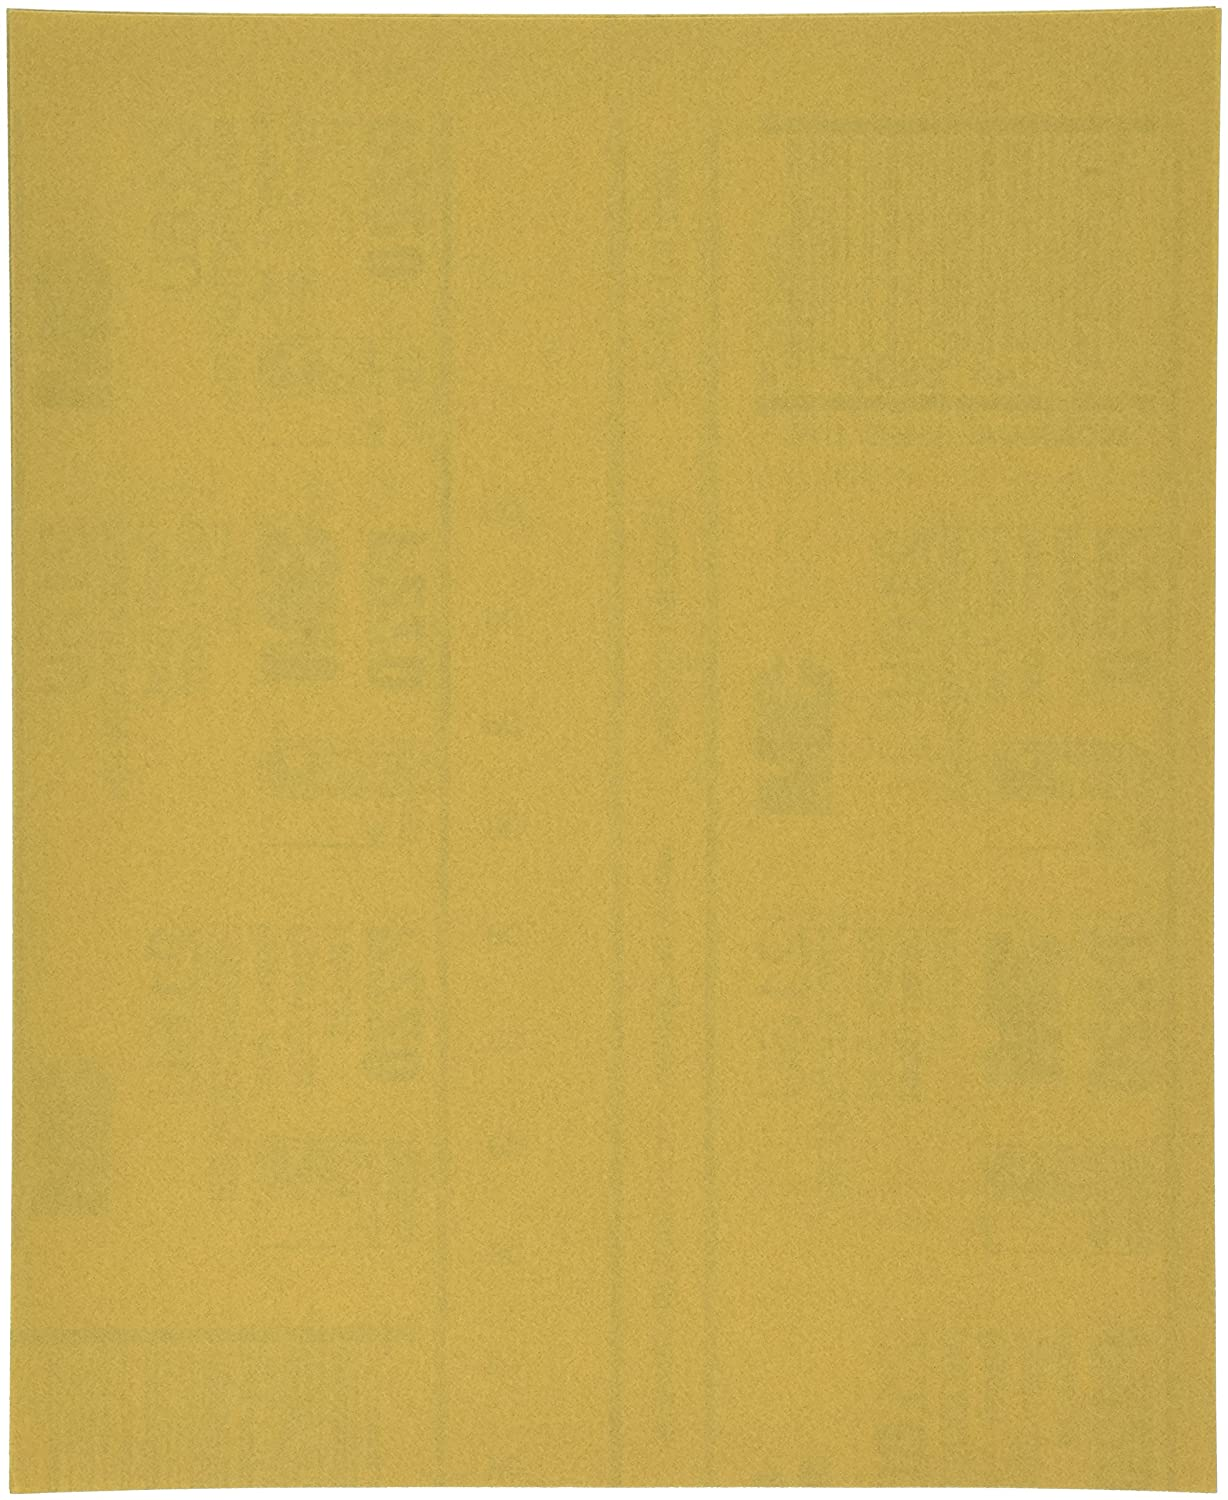 3M SandBlaster Between Coats Sandpaper 320-Grit 9-Inch by 11-Inch